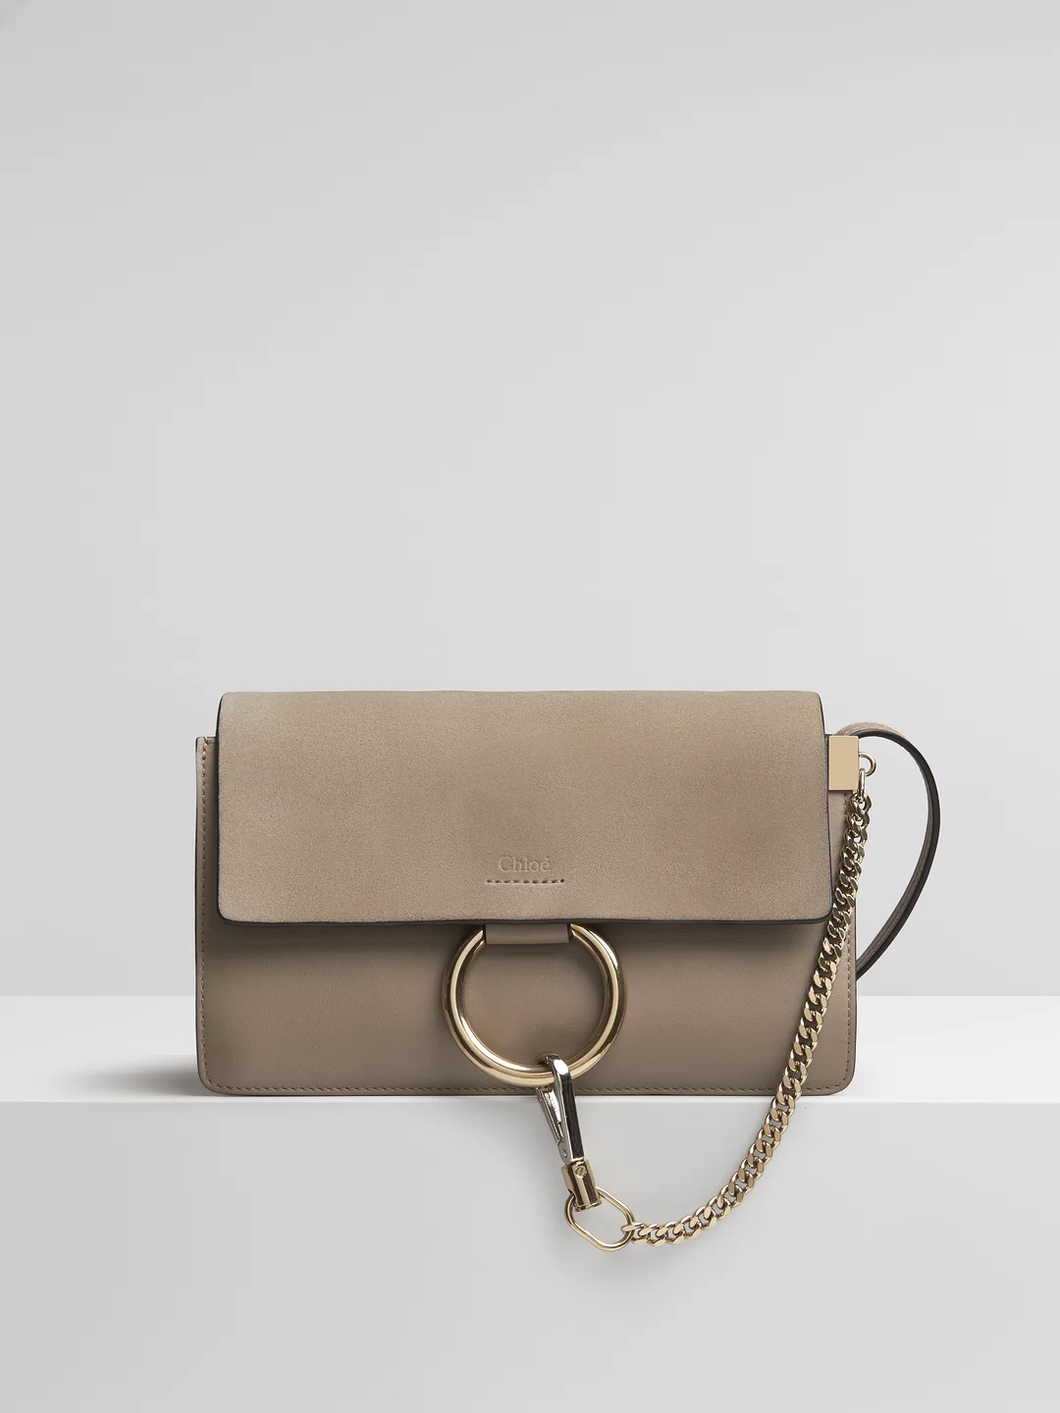 Chloe Small Faye Shoulder Bag in Motty Grey